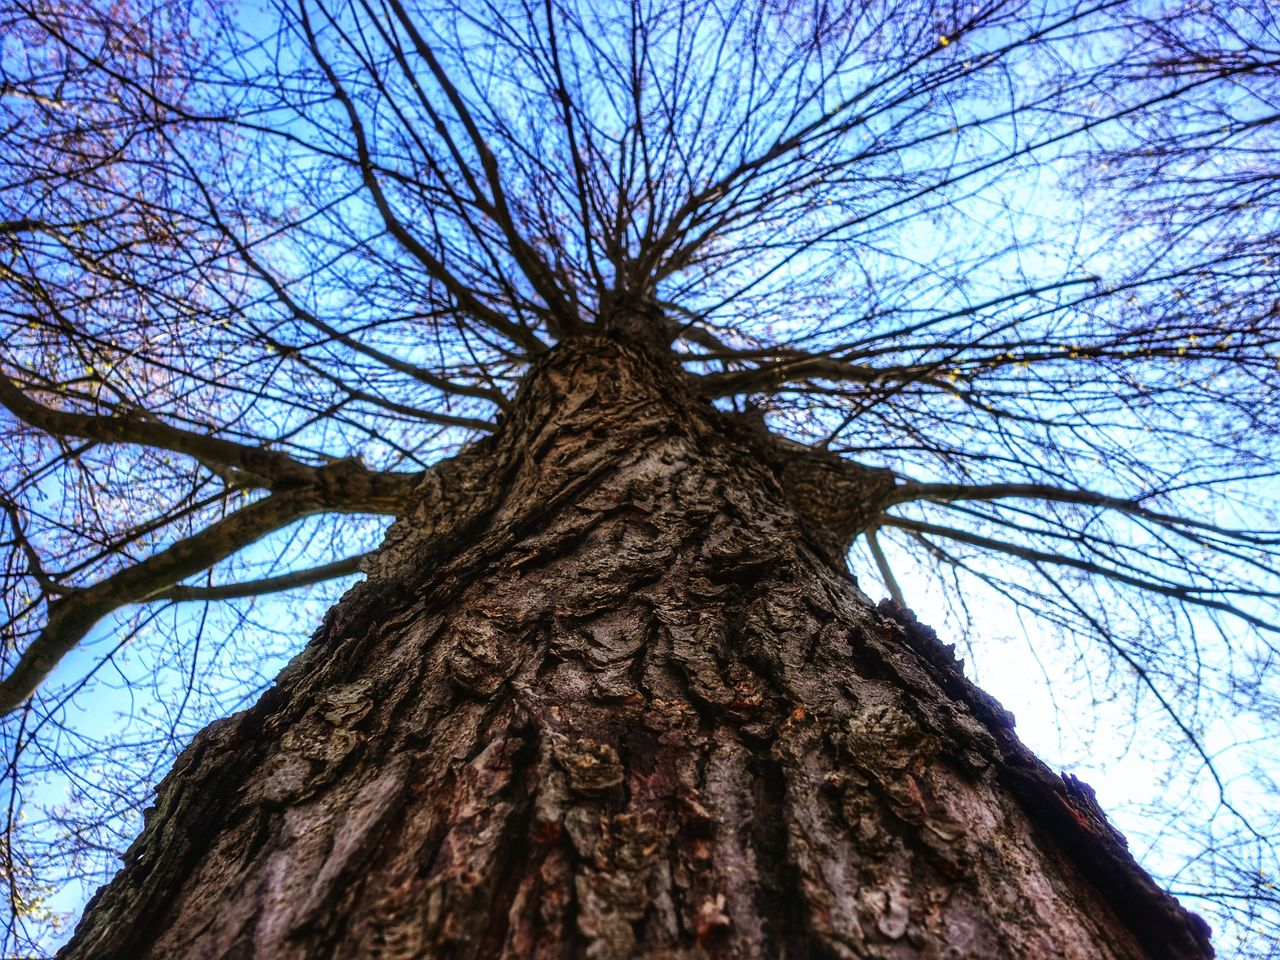 LOW ANGLE VIEW OF BARE TREE